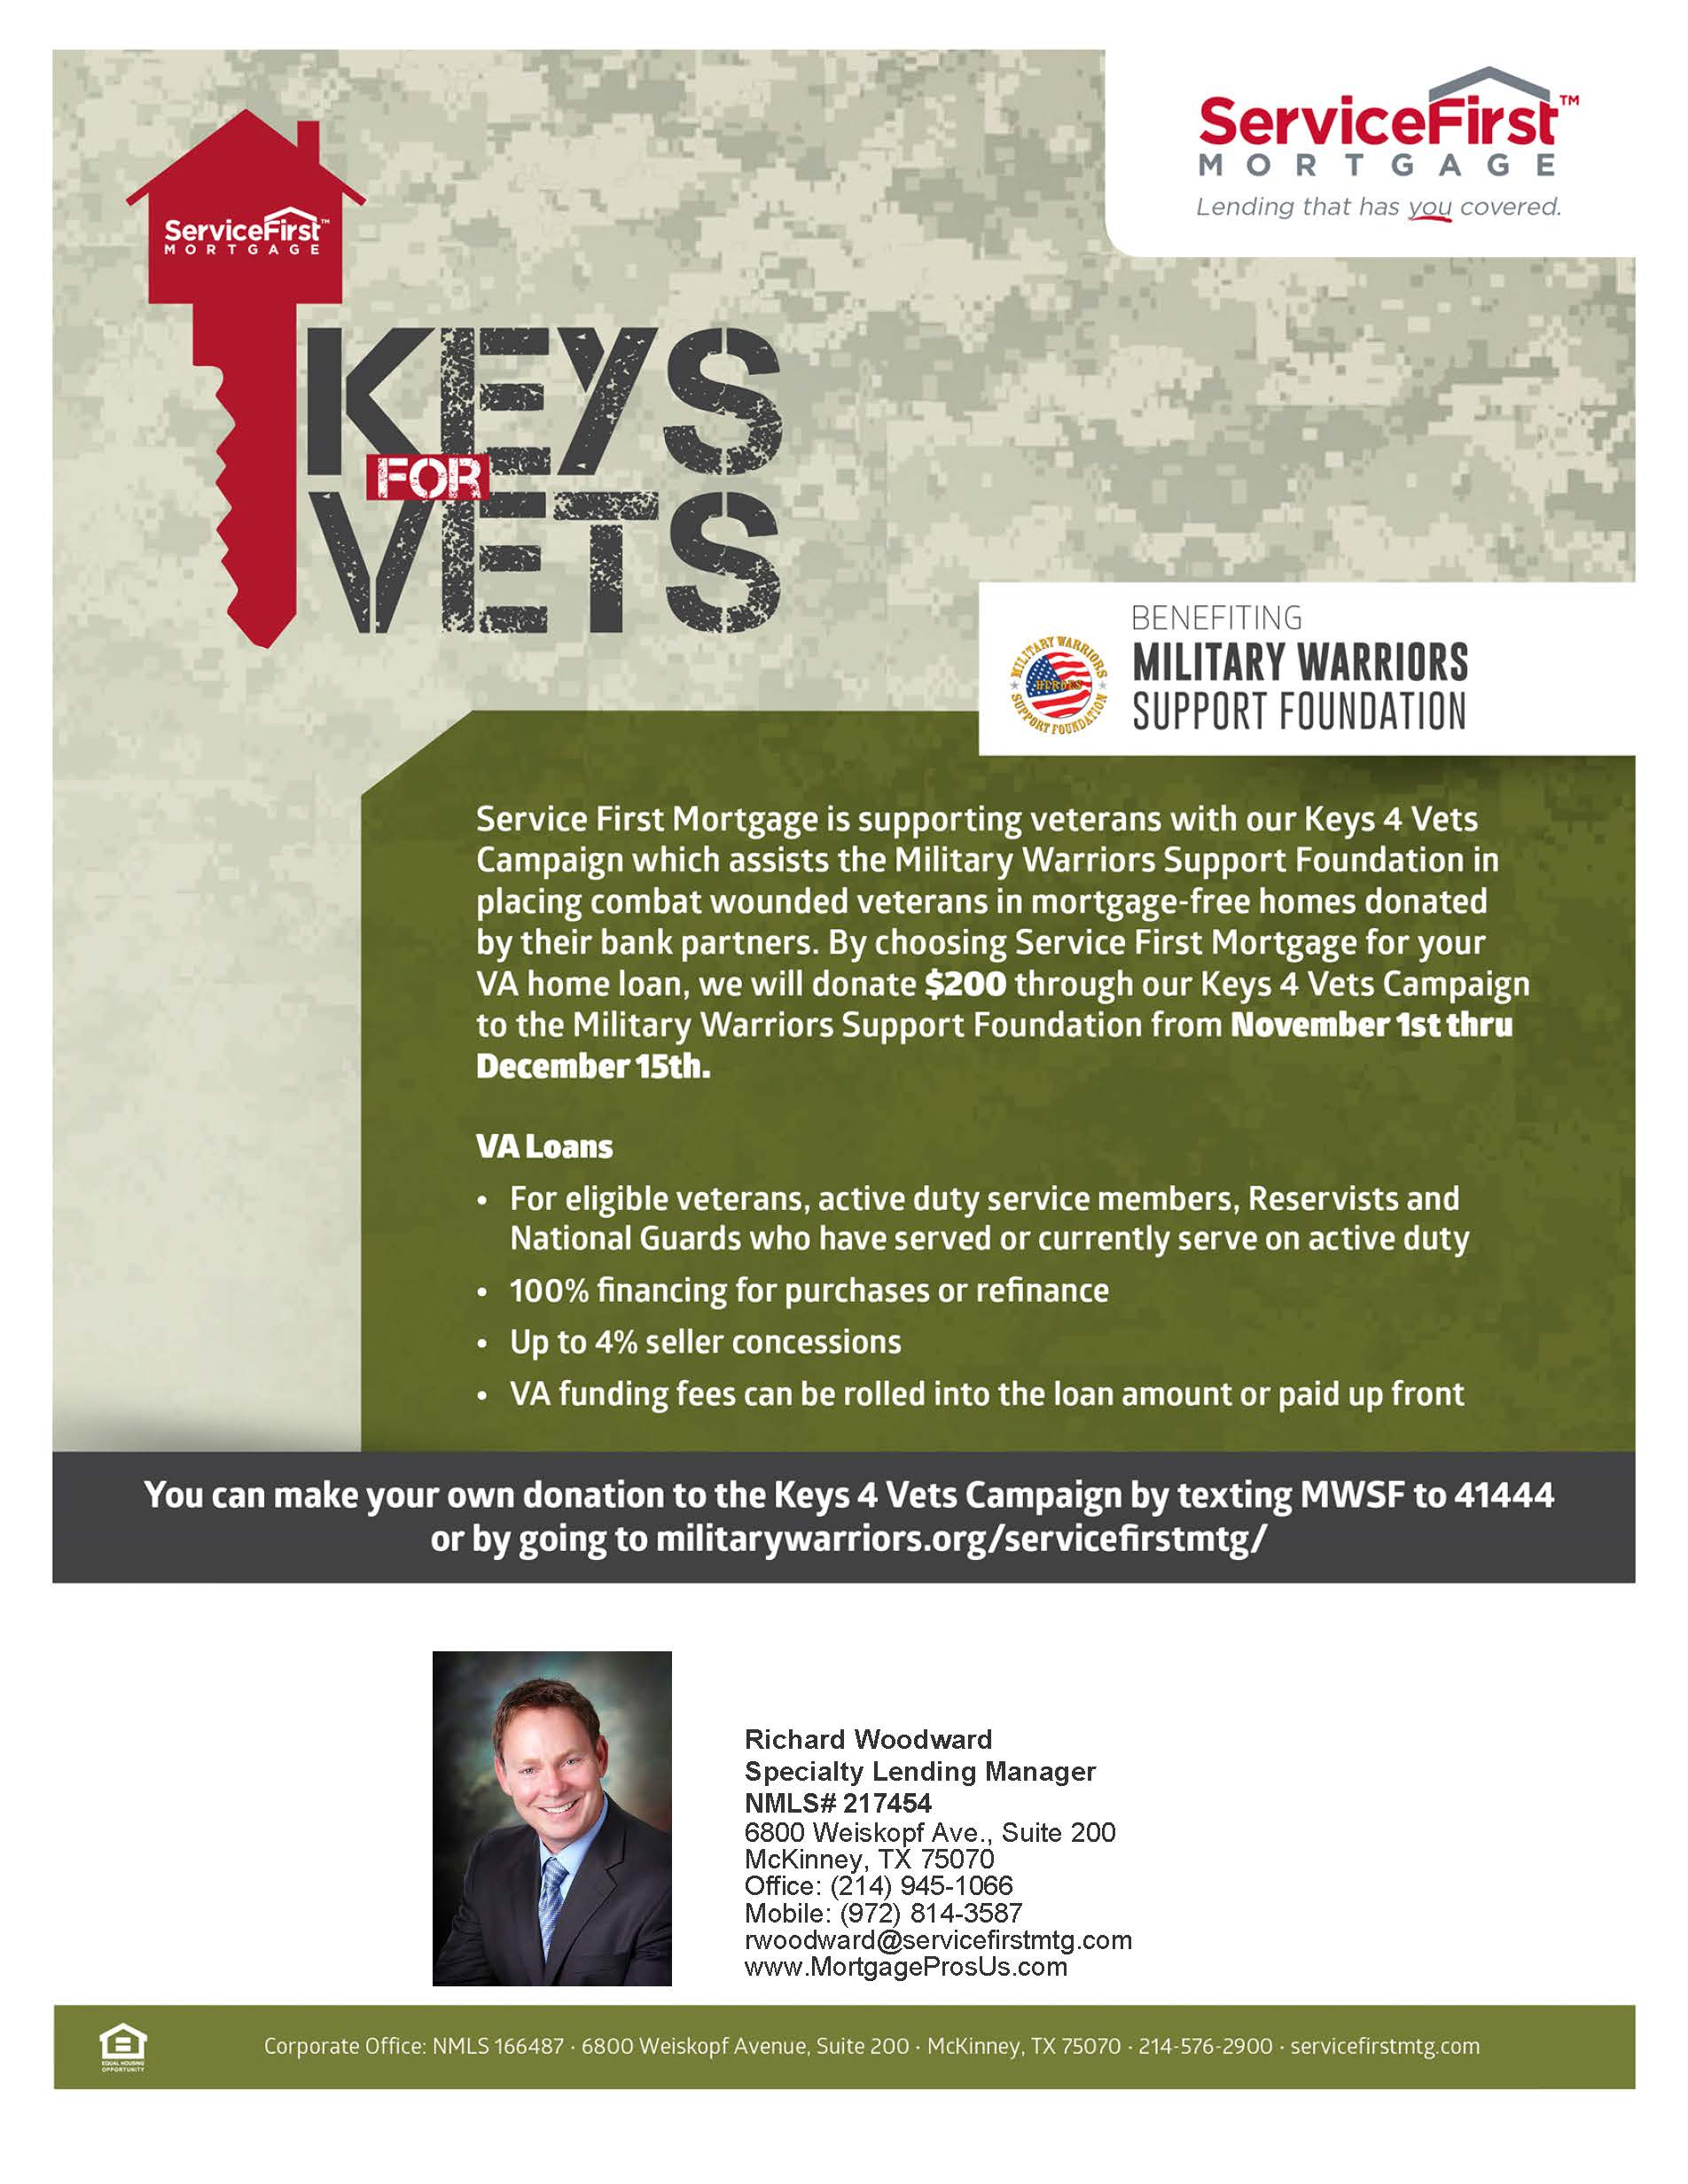 Va home loan texas richard woodward mortgage team service first mortgage is supporting veterans with our keys 4 vets campaign xflitez Choice Image